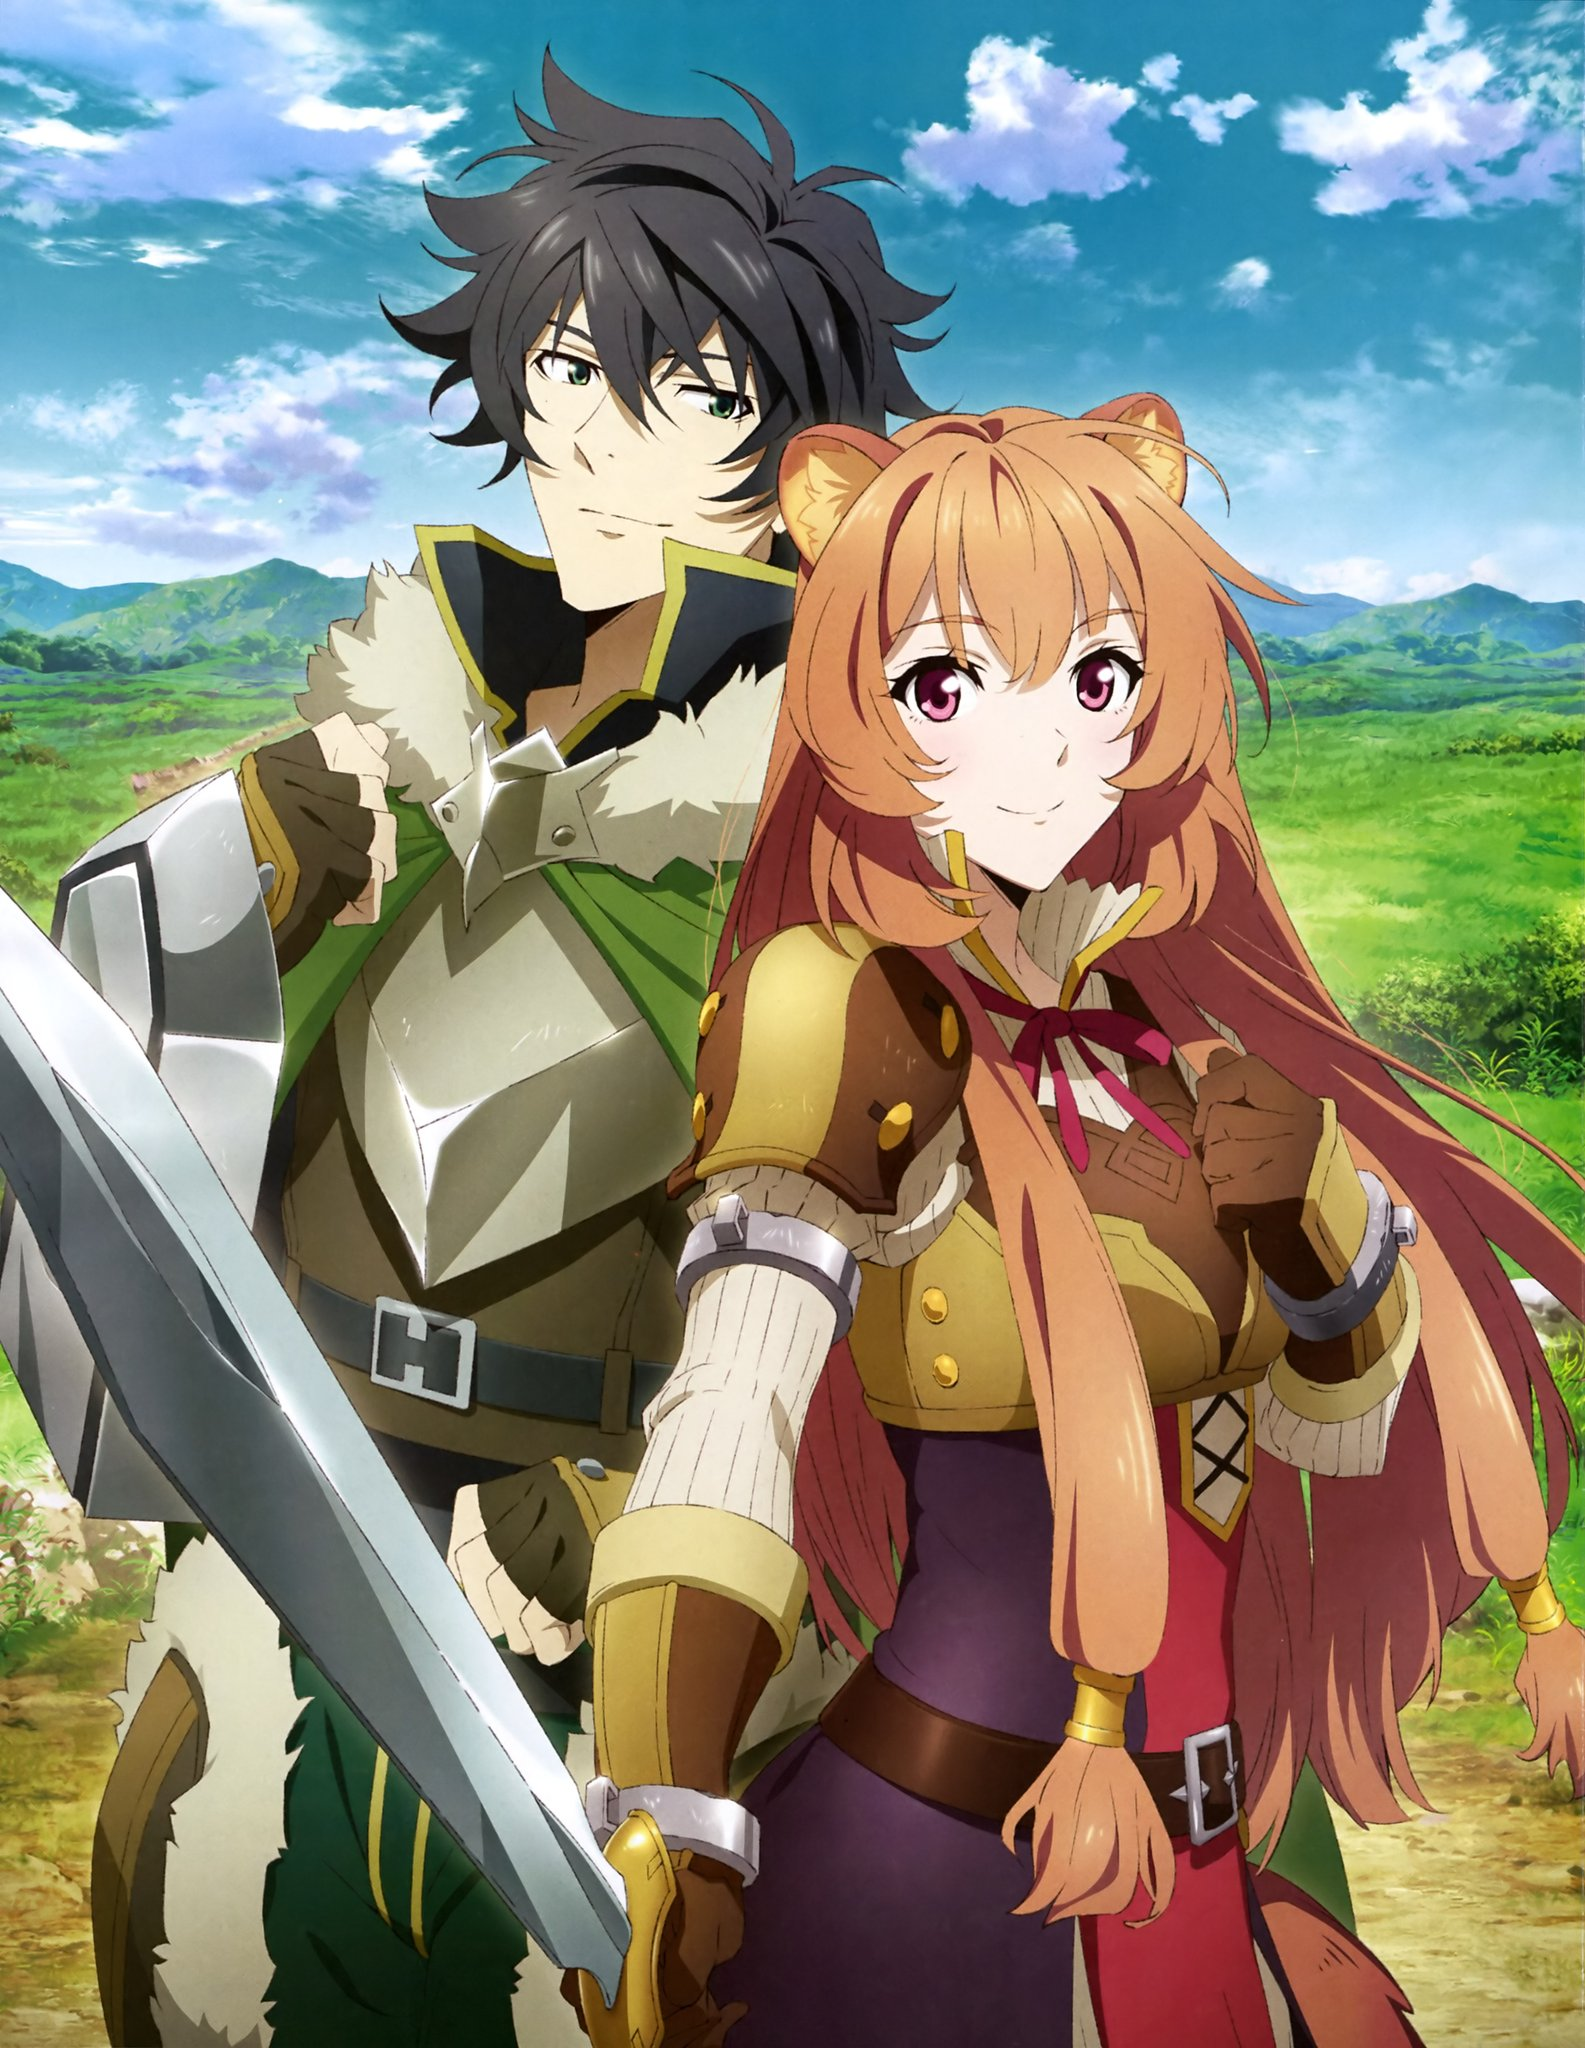 Newest Shield Hero scan featuring Naofumi and Raphtalia : shieldbro